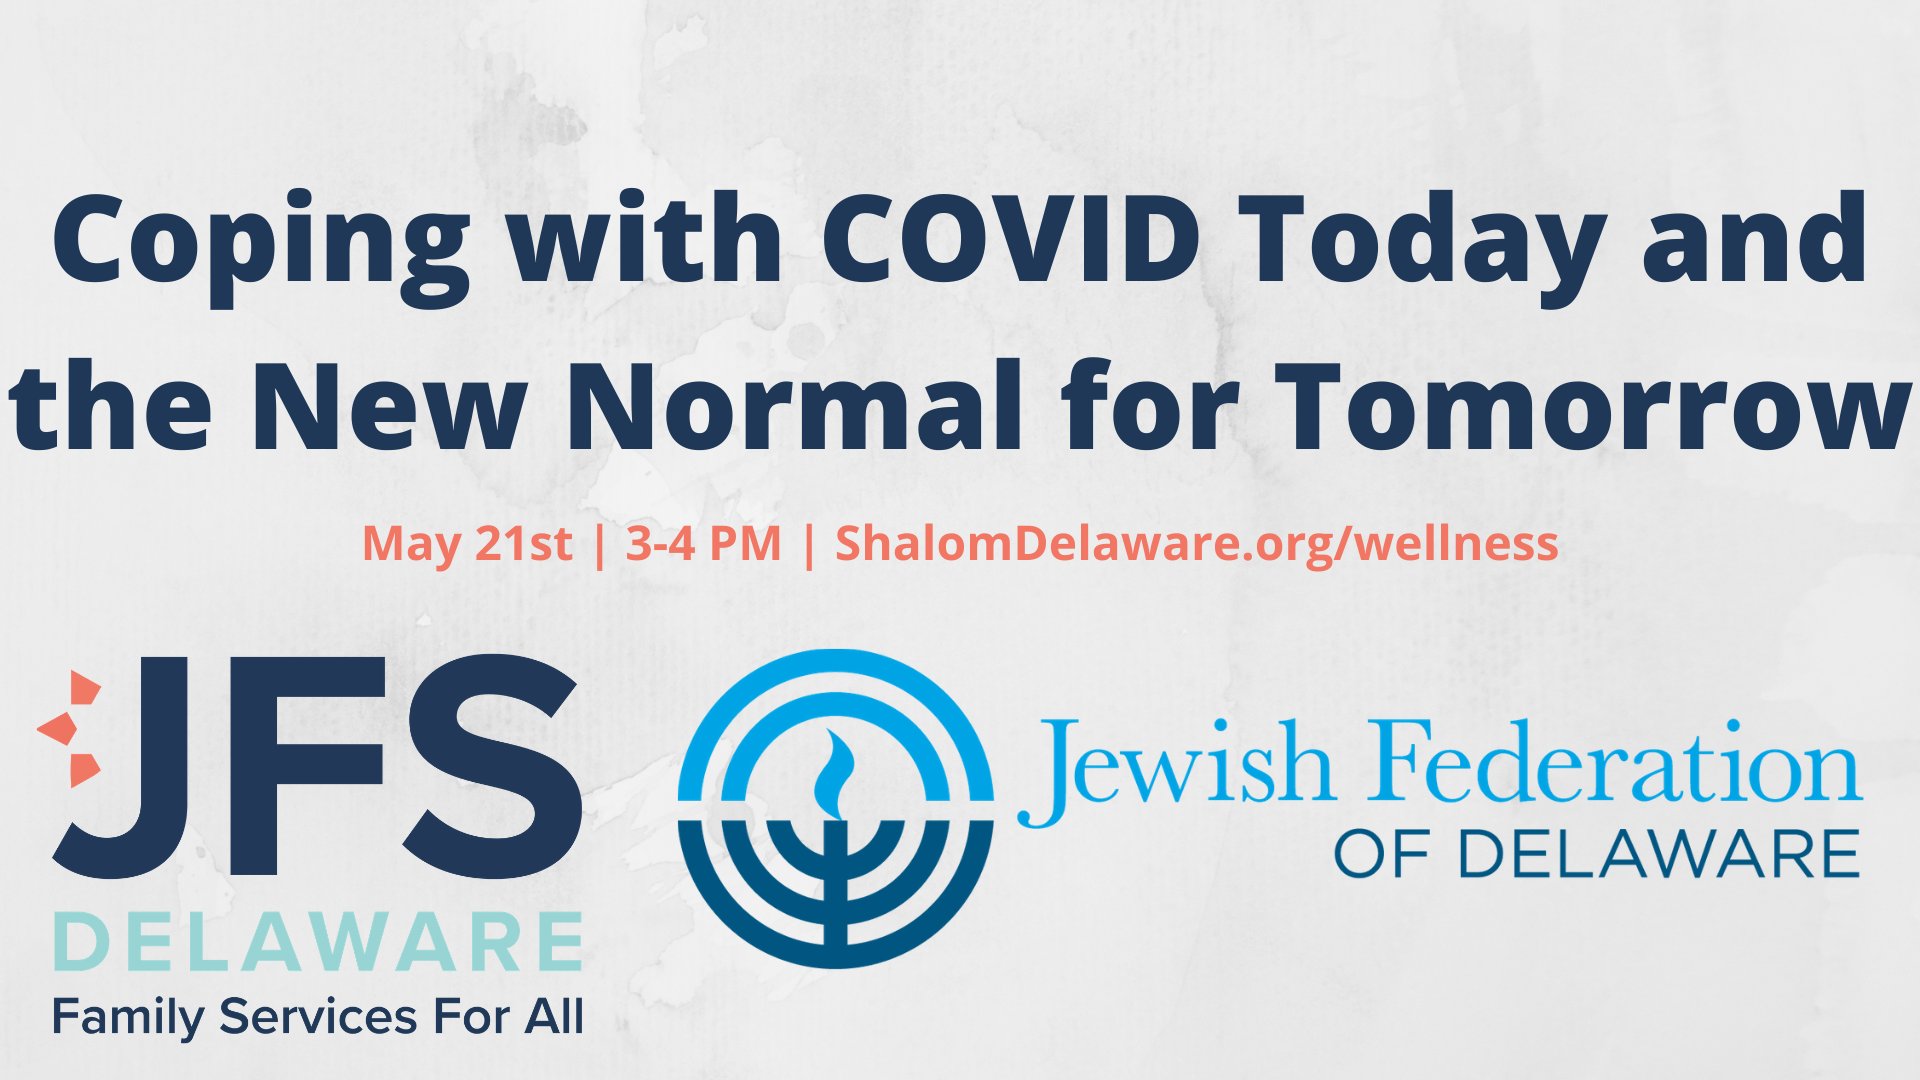 Coping with COVID Today and the New Normal for Tomorrow